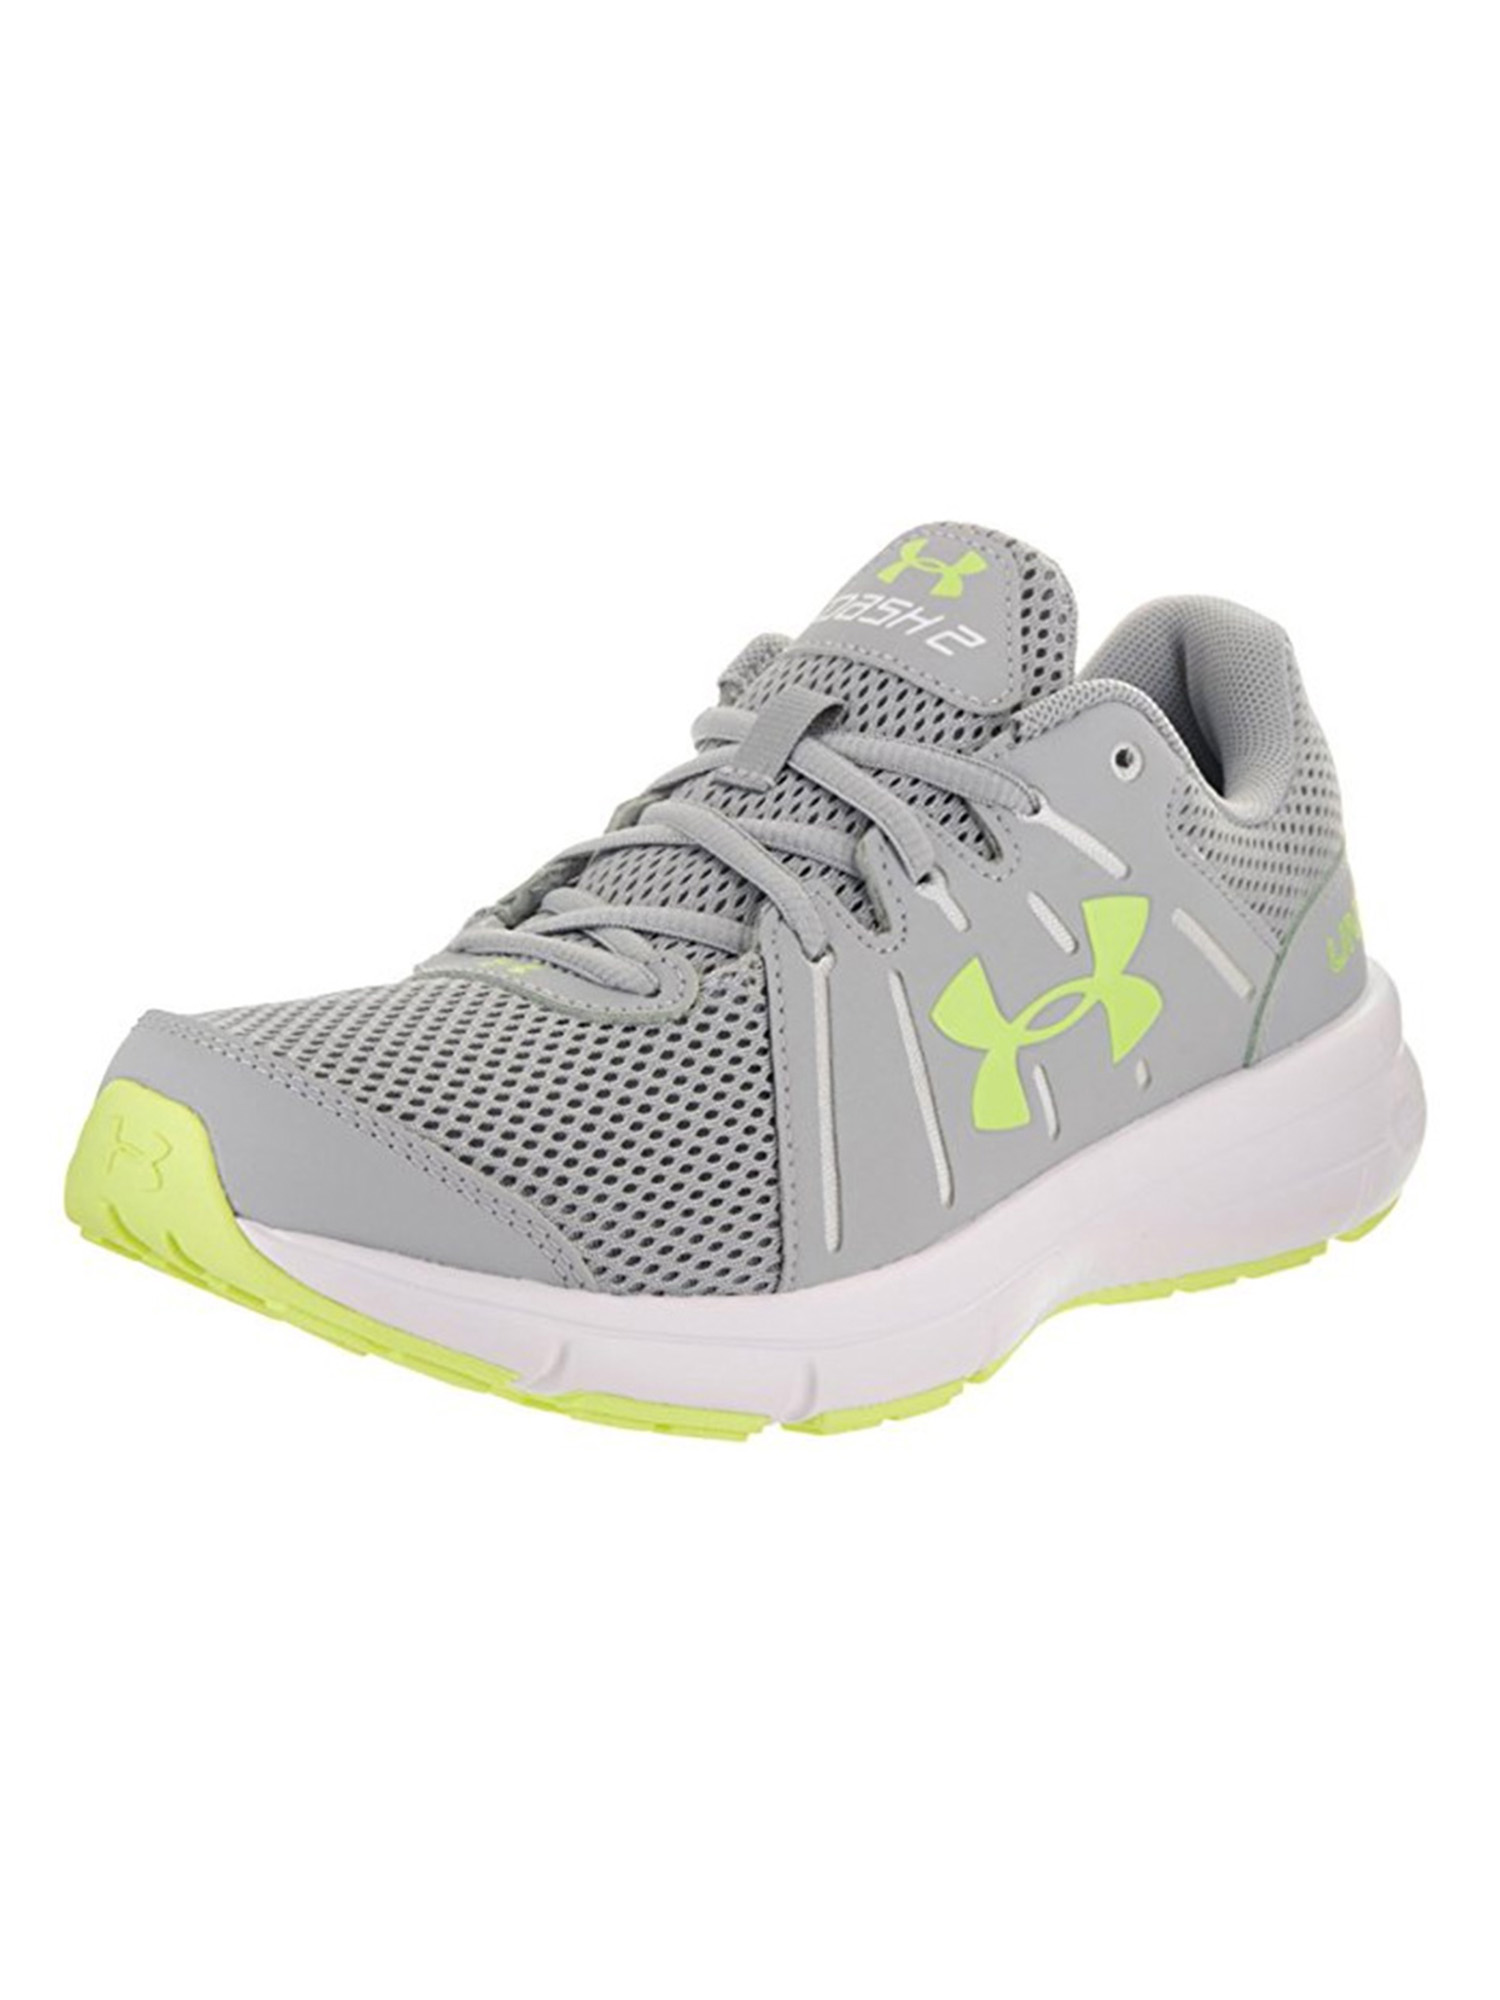 Under Armour Women's Dash RN 2 Running Shoes 1285488; Picture 2 of 6 ...